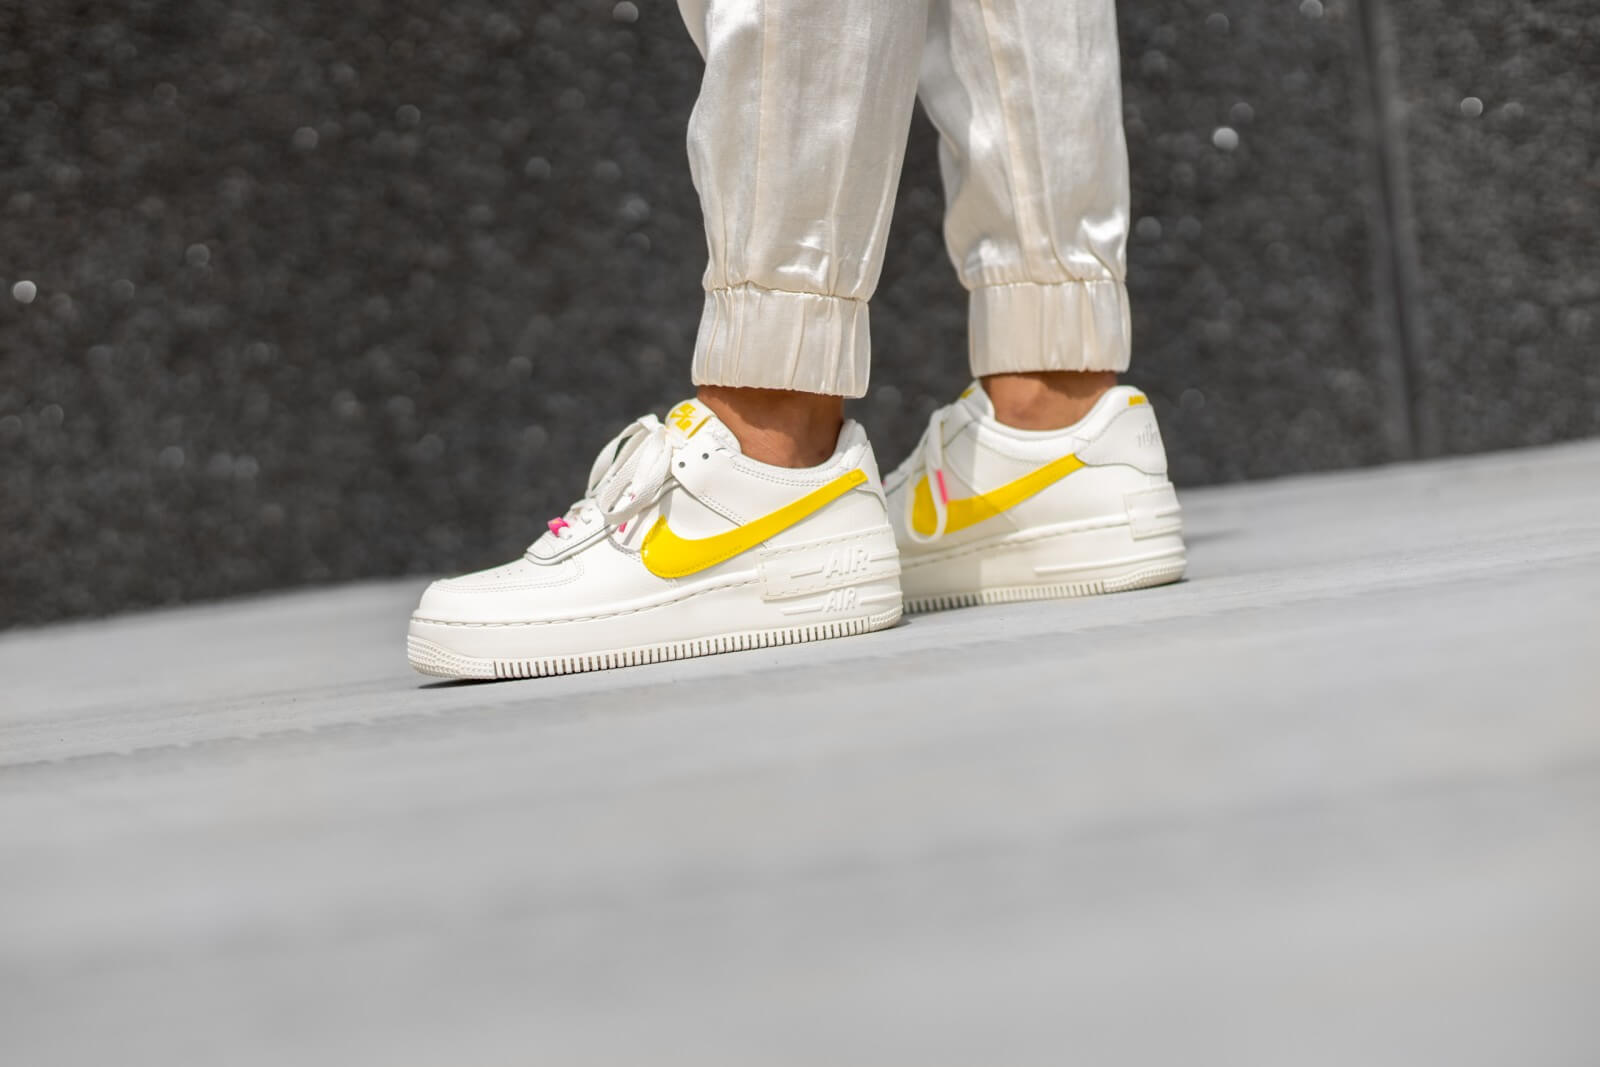 Nike Women S Air Force 1 Shadow Sail Opti Yellow Digital Pink